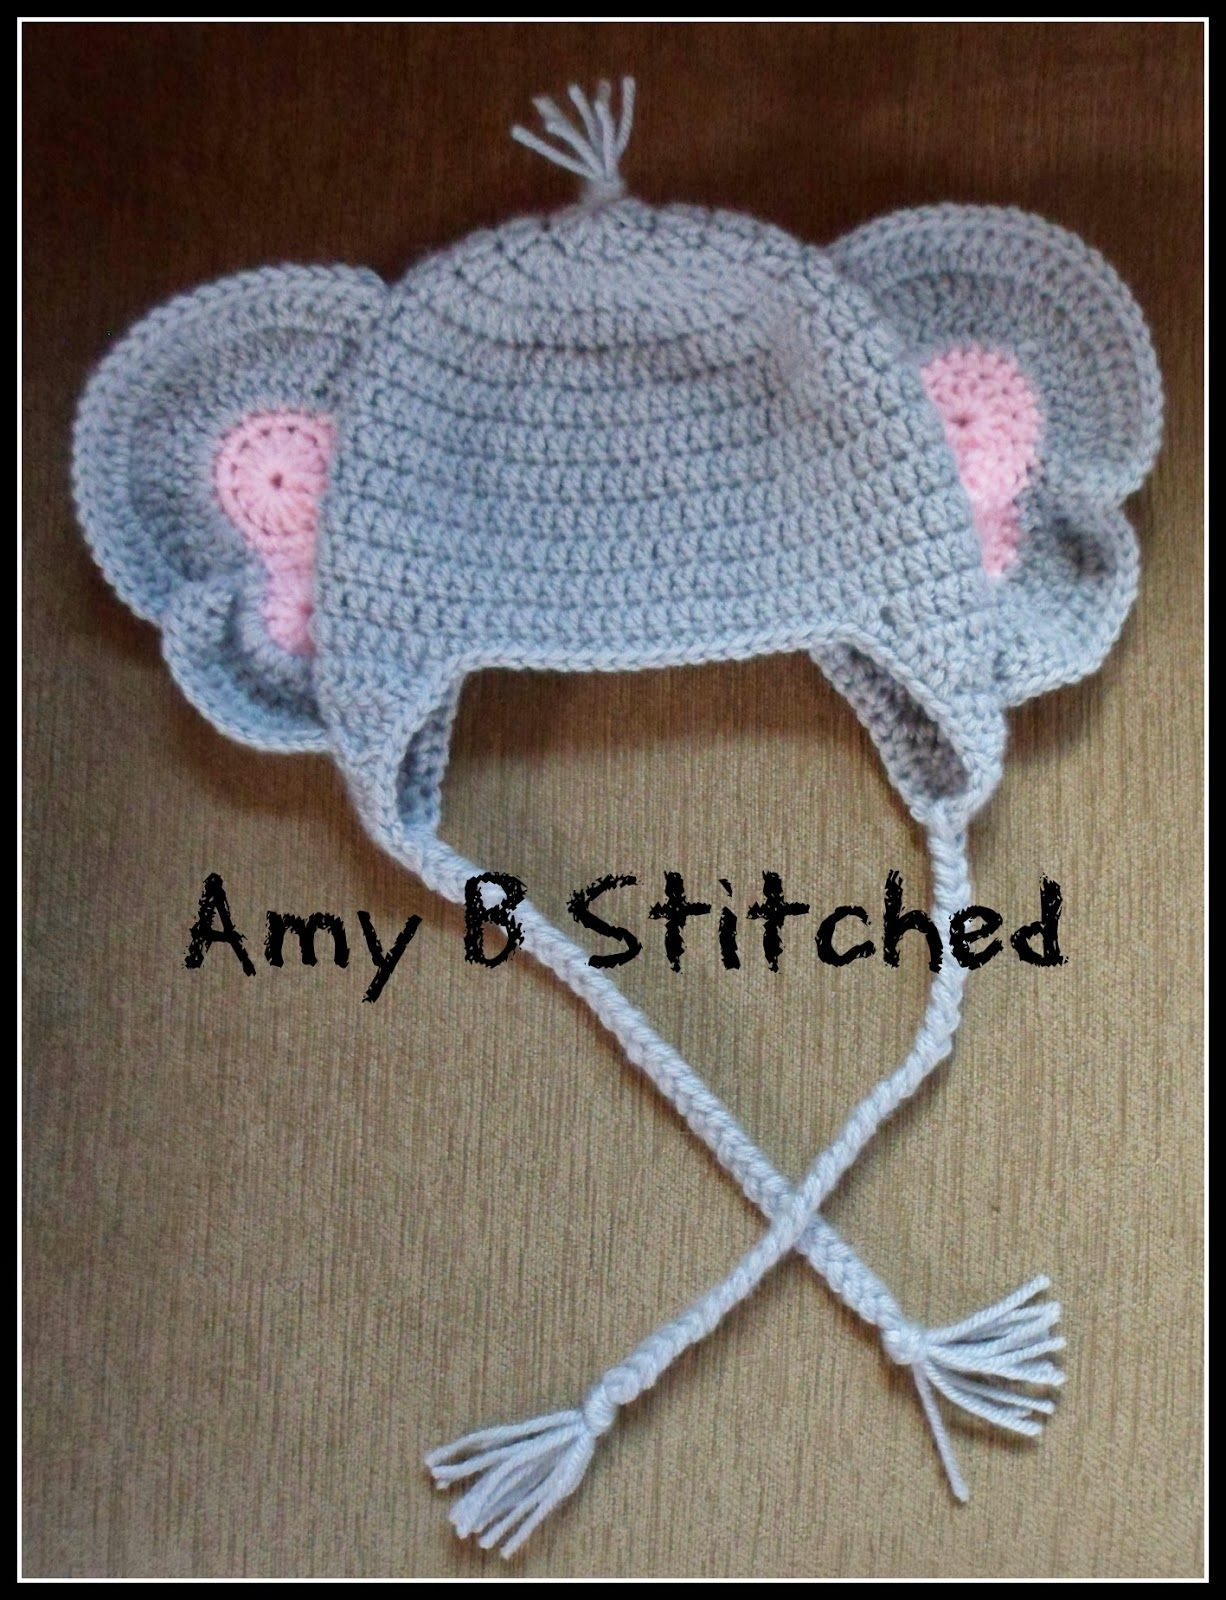 6d5b3707443 PATTERN REVIEW A Stitch At A Time for Amy B Stitched  Newborn Angel Wings  and